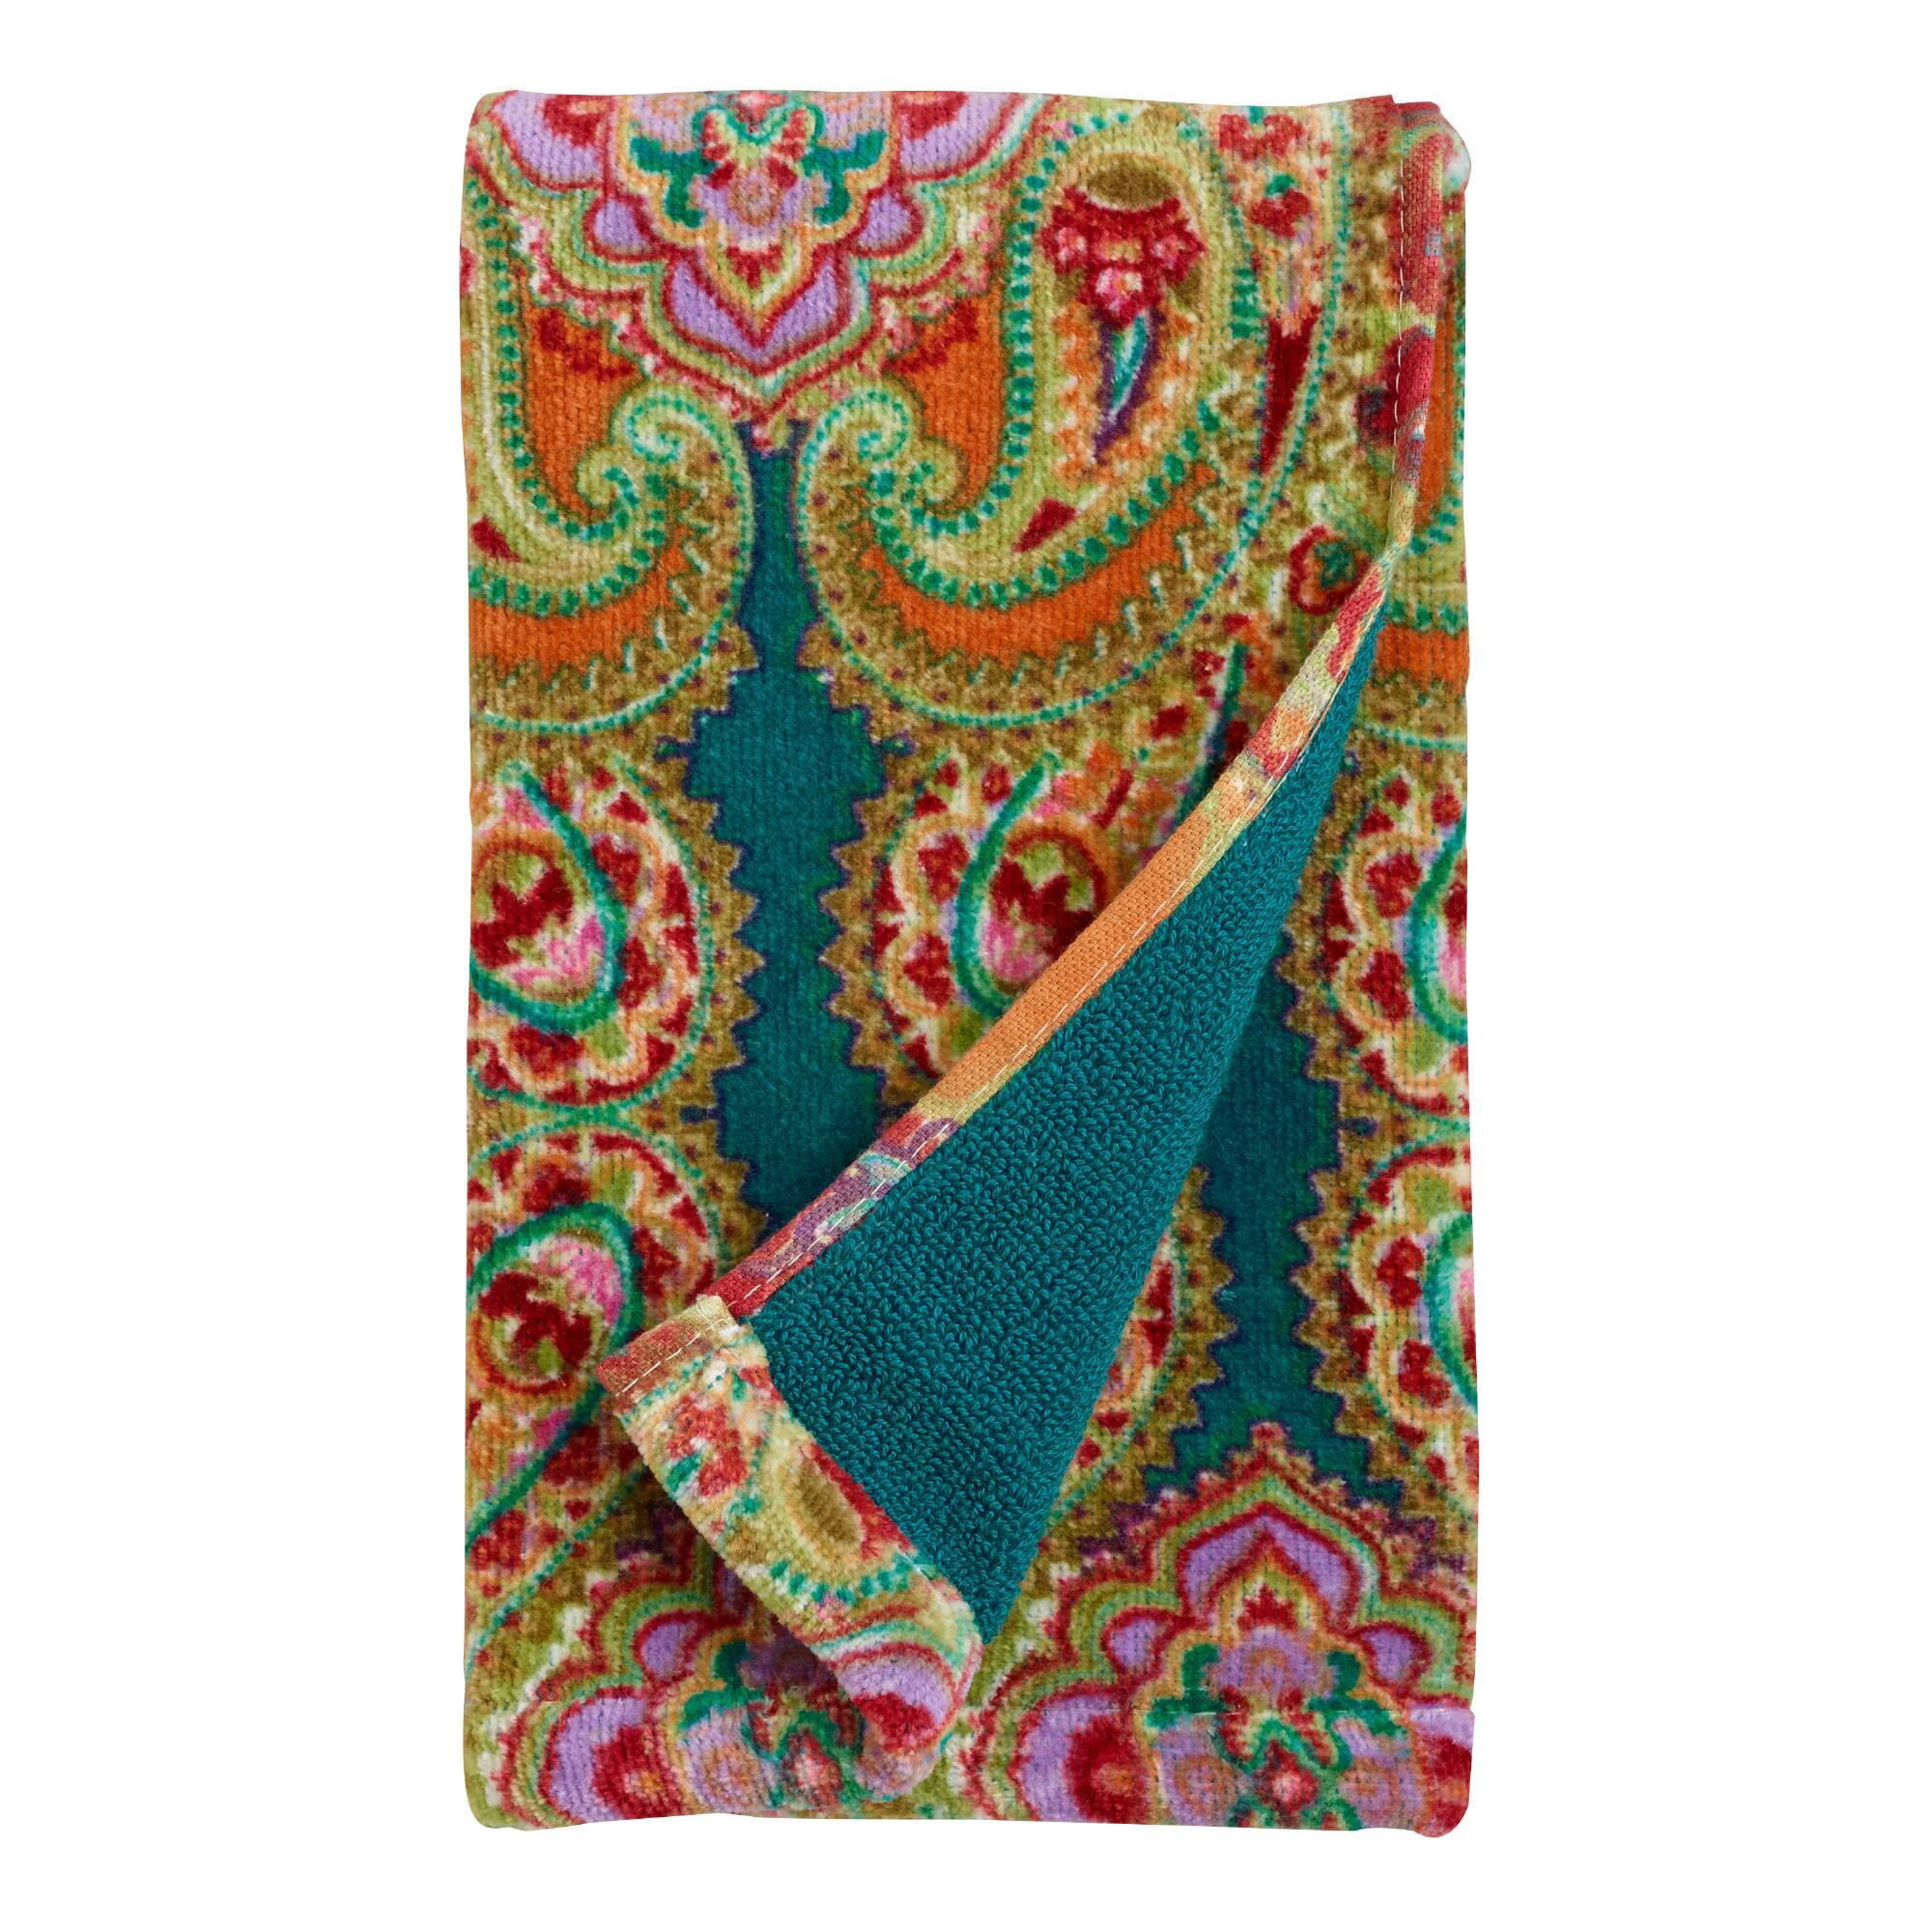 Venice Hand Towel - Cotton by World Market